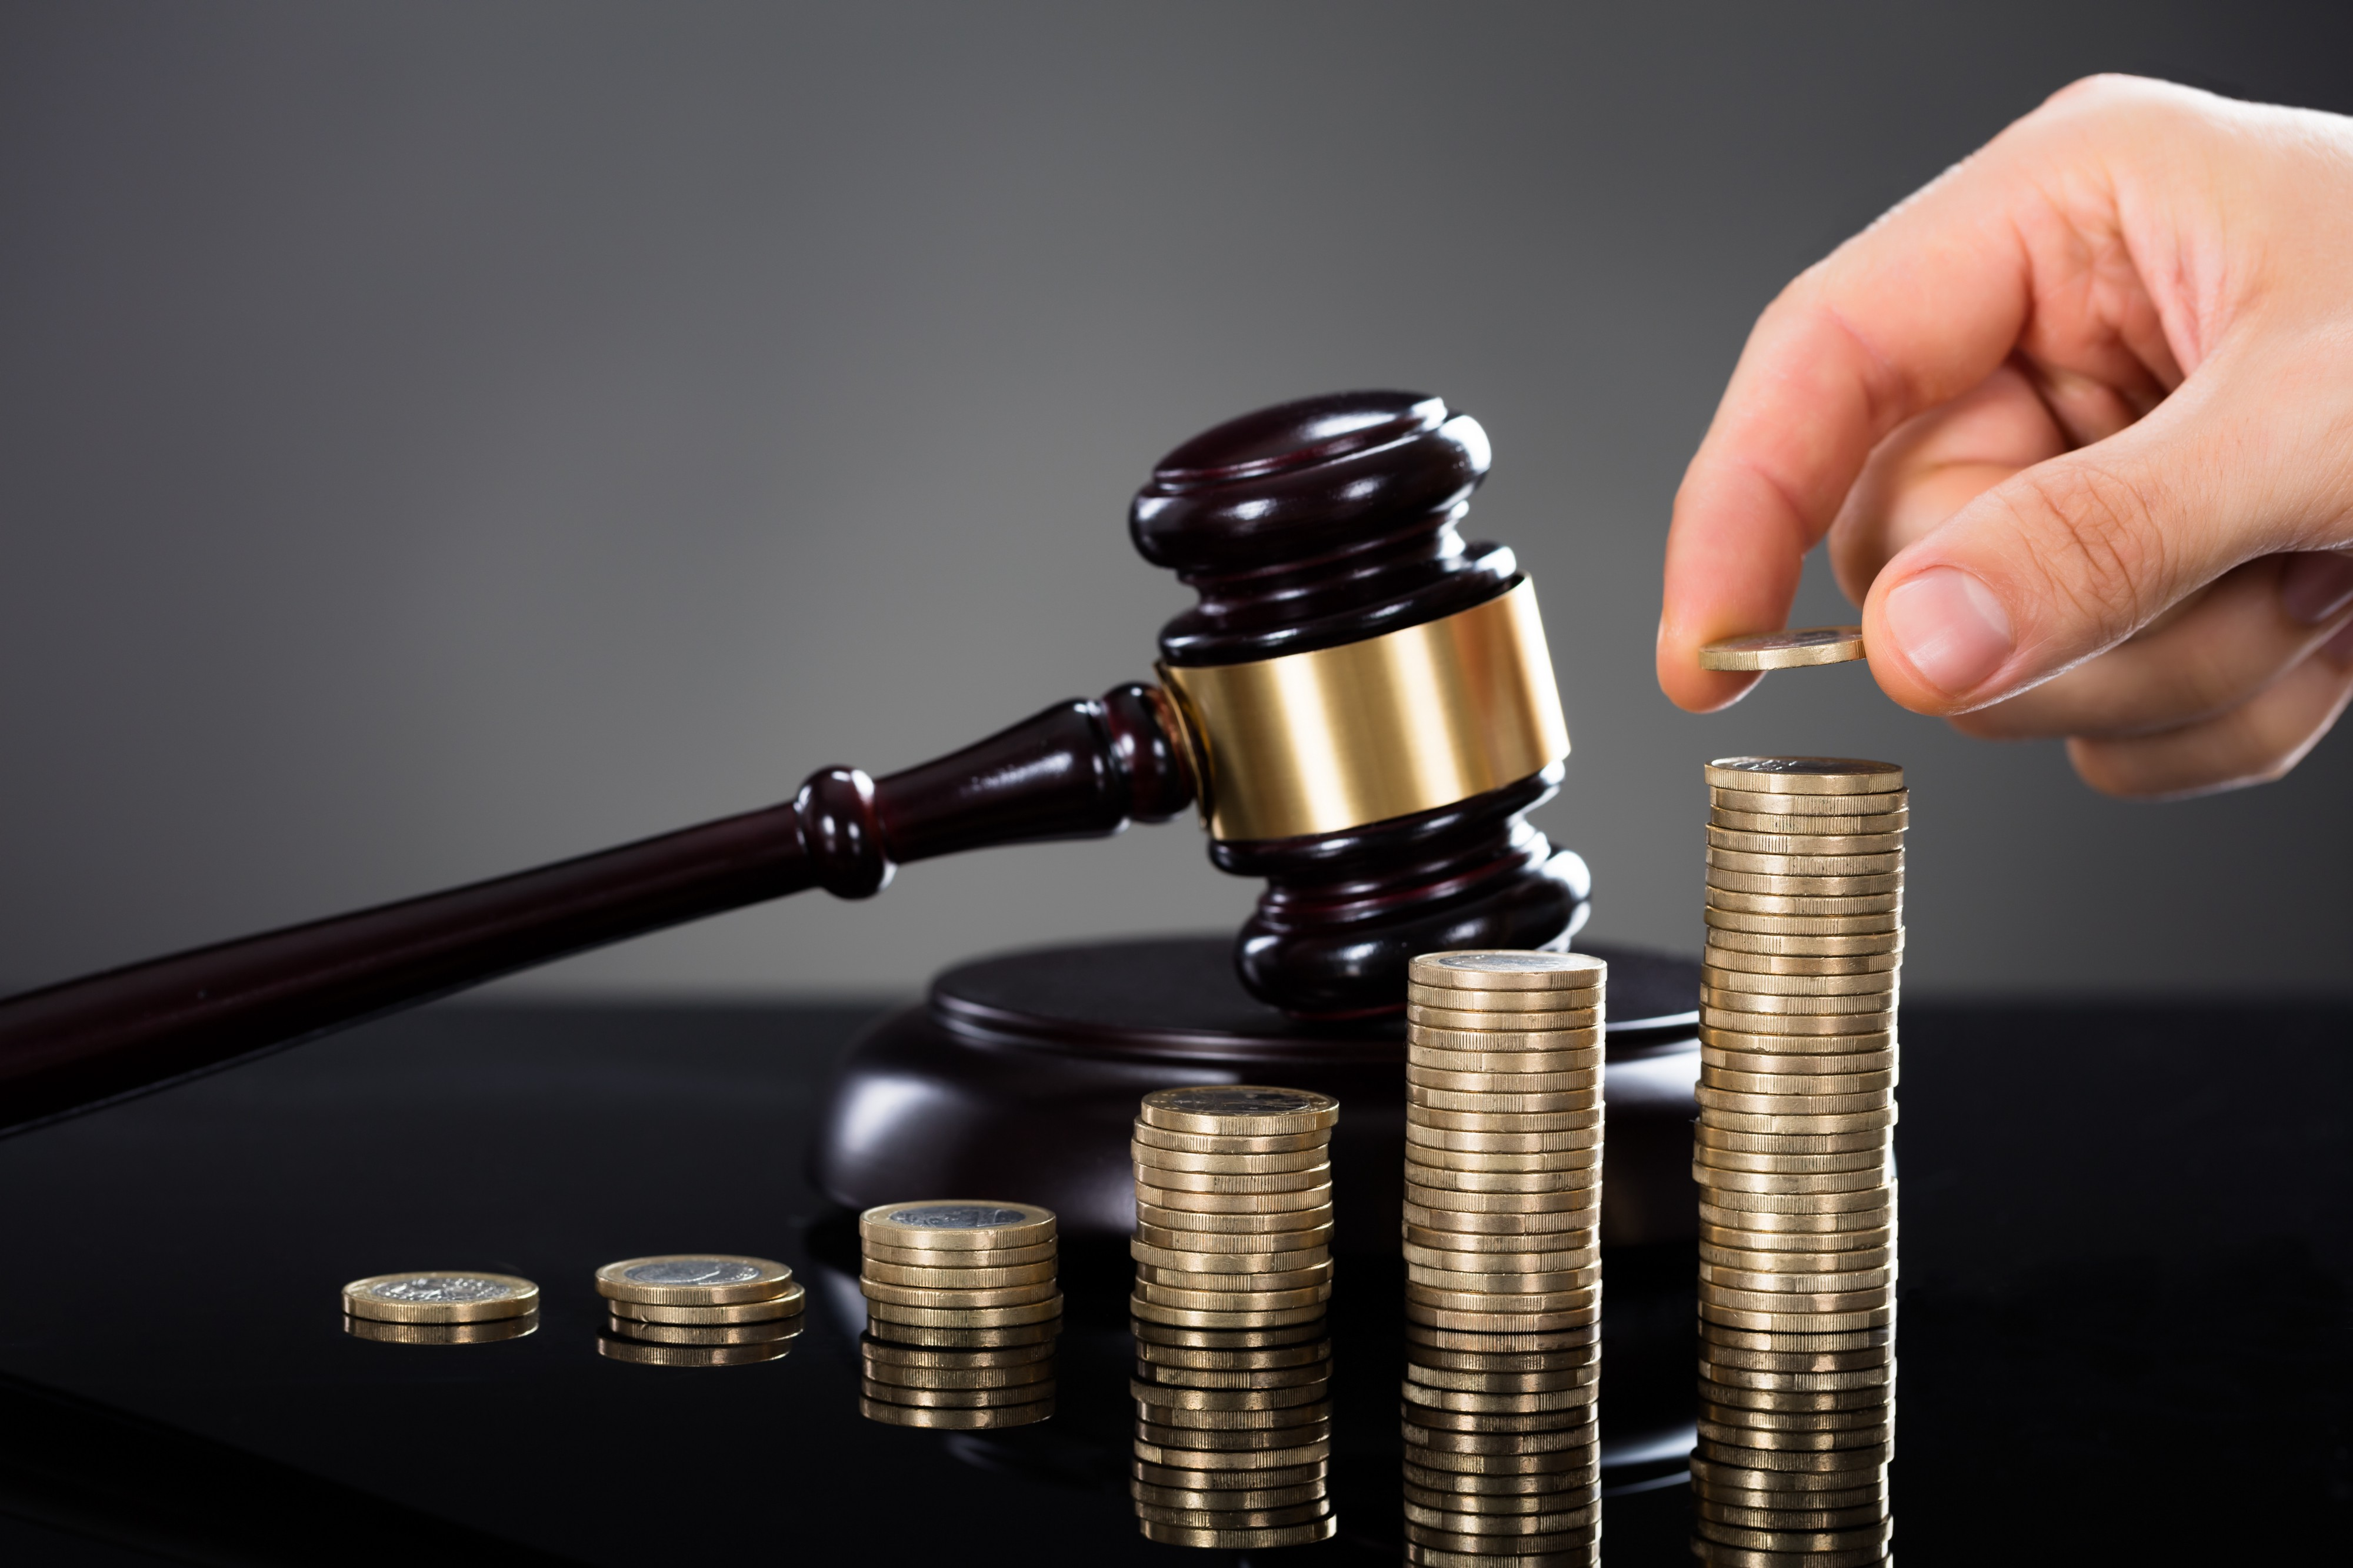 Gavel next to six stack of coins of increasing heights with a hand placing a coin on the top of the highest stack